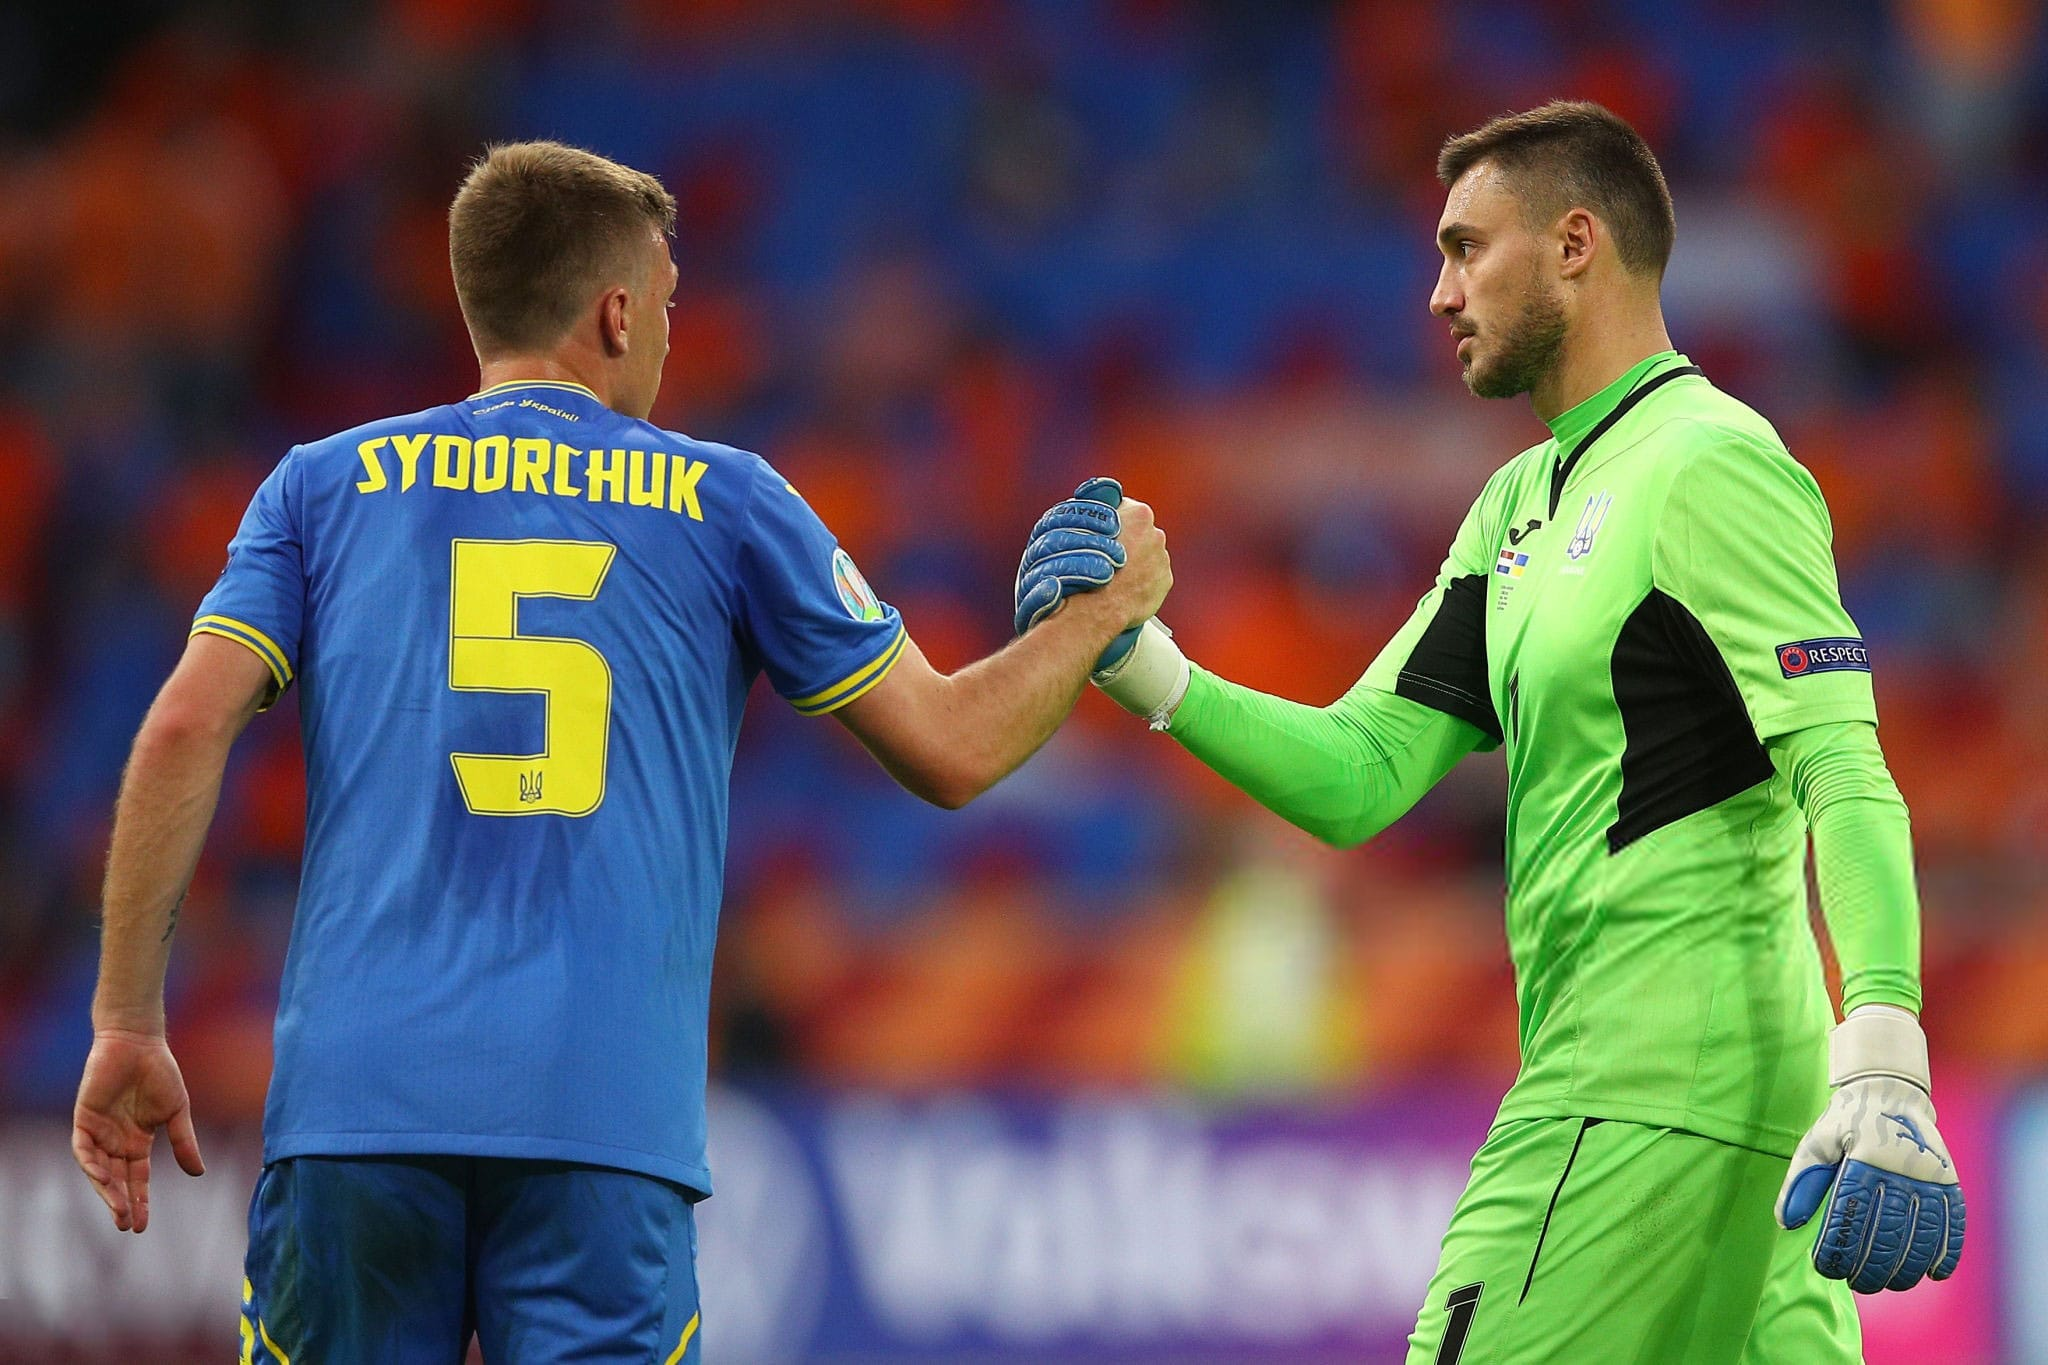 First appearance of Brave GK at the European Championship - Brave GK